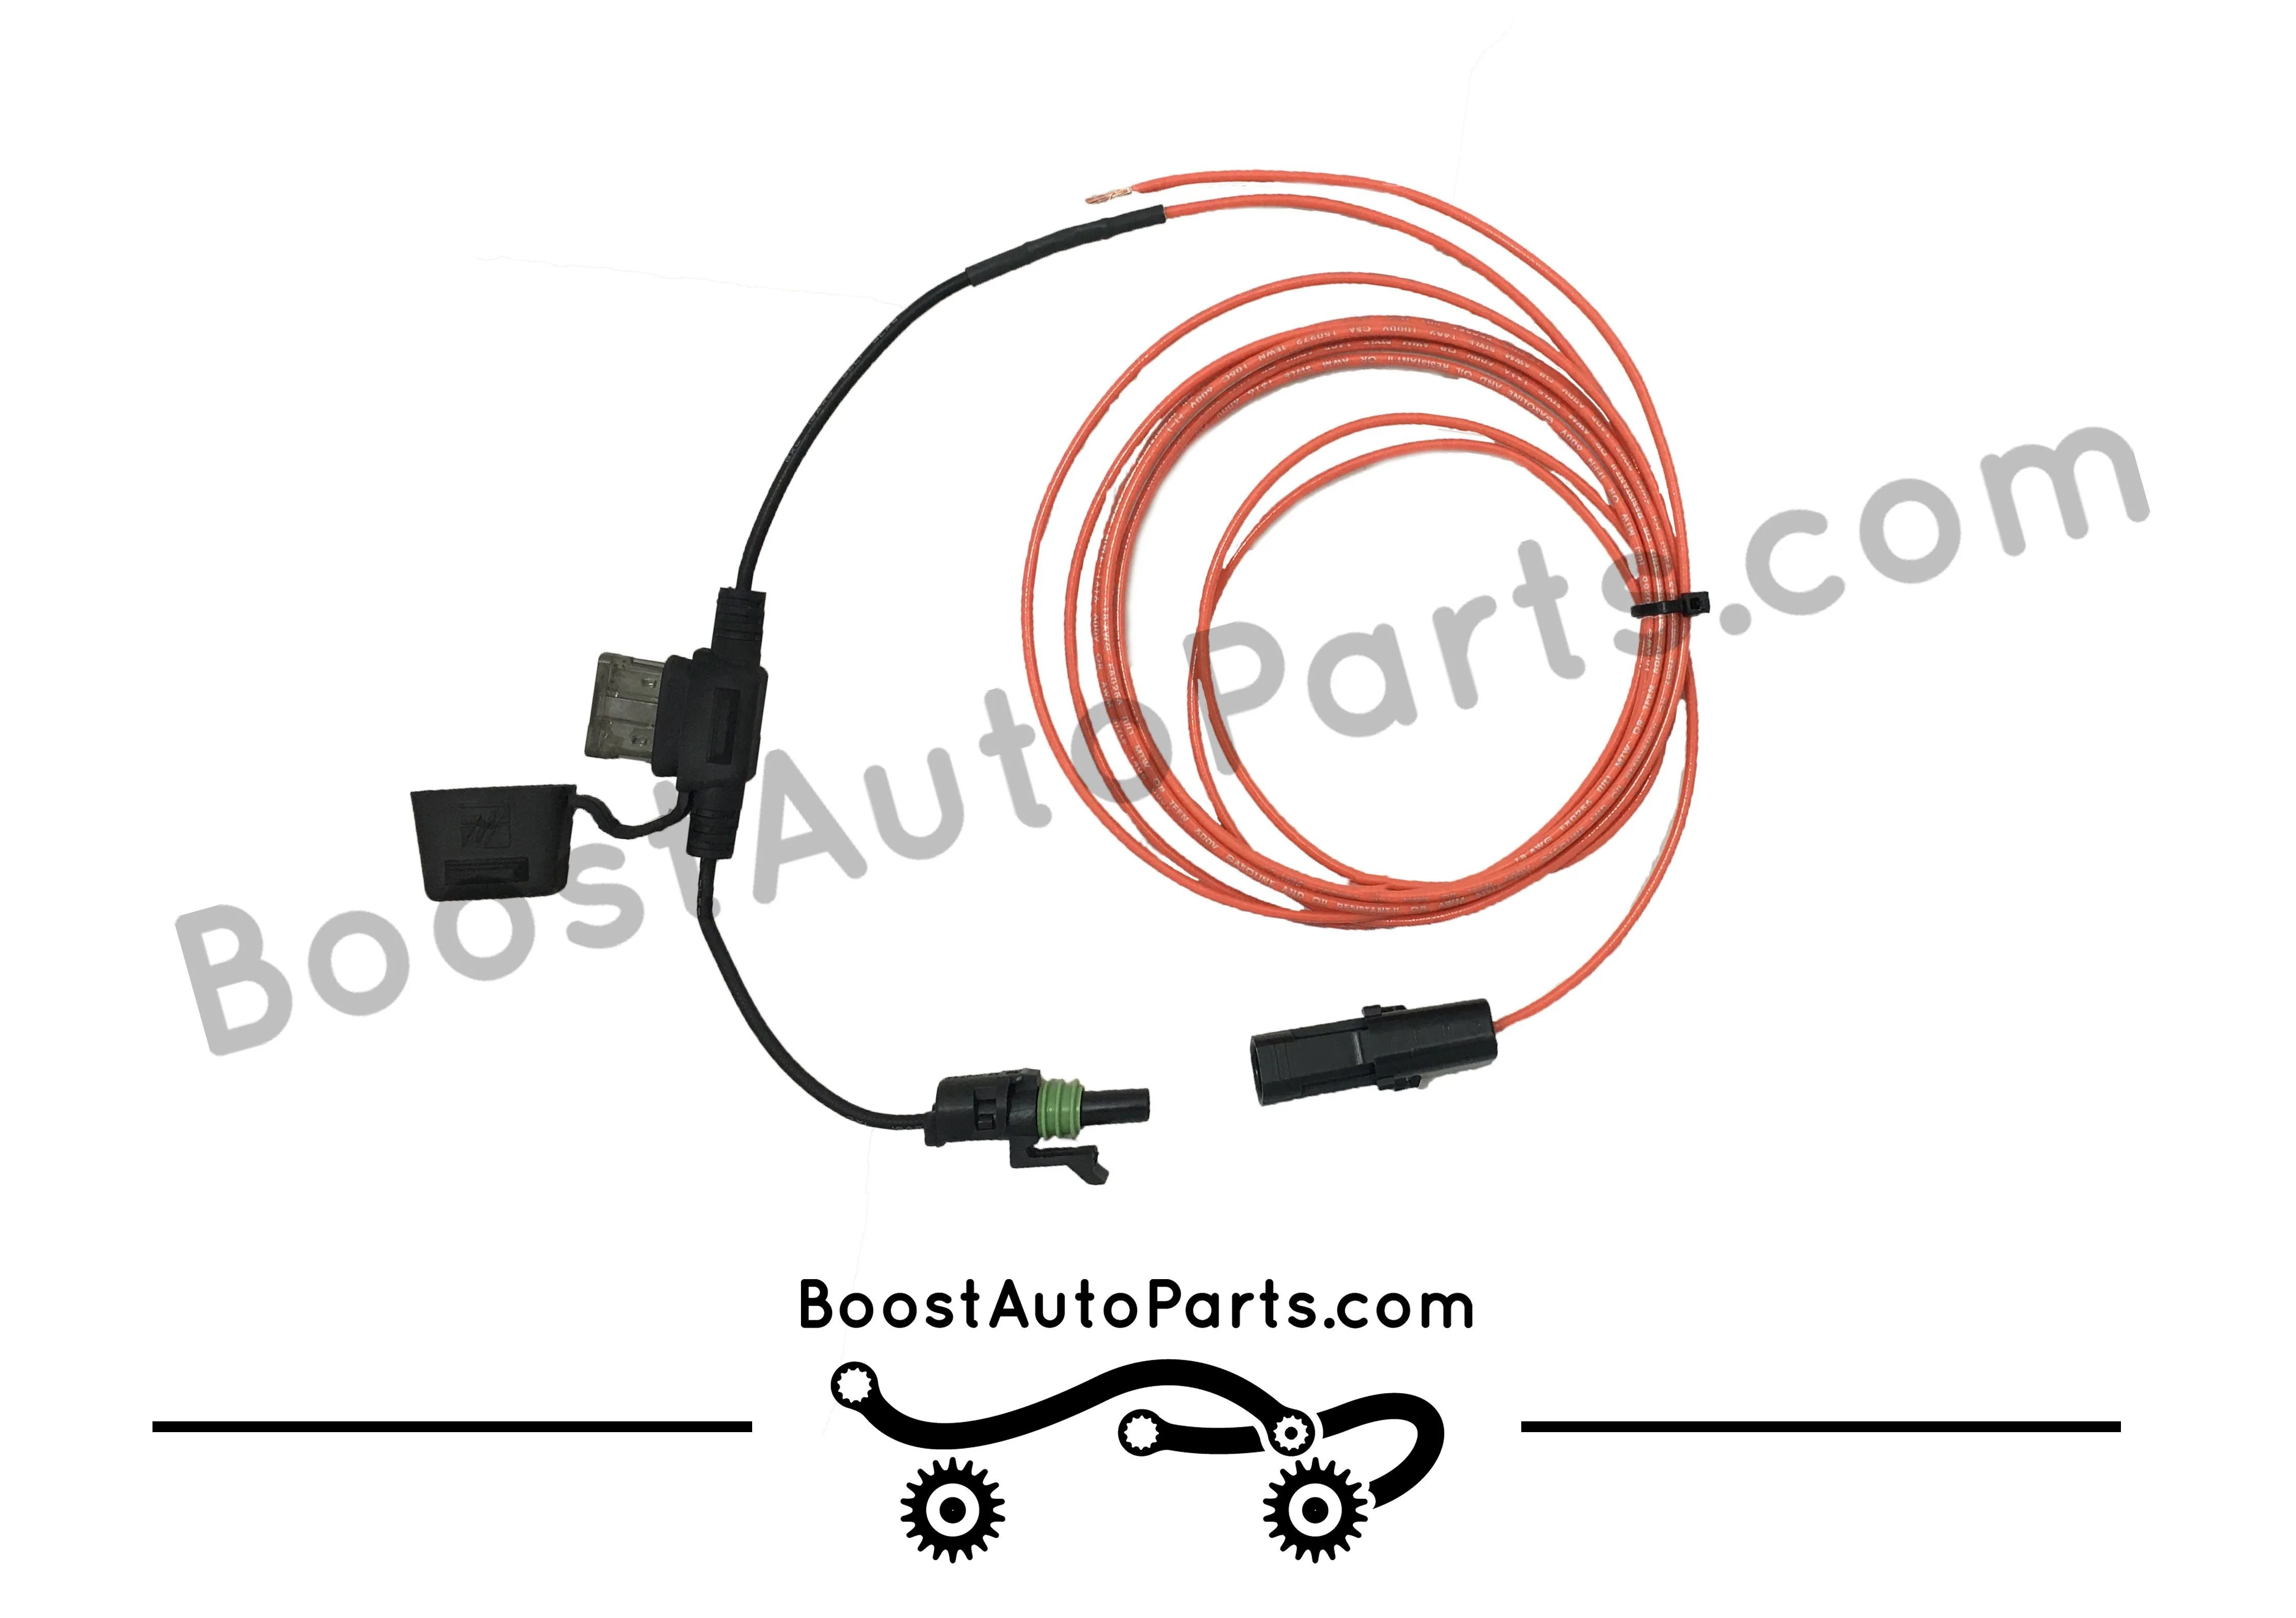 hight resolution of gm wiring harness parts blog wiring diagram gm wire harness parts